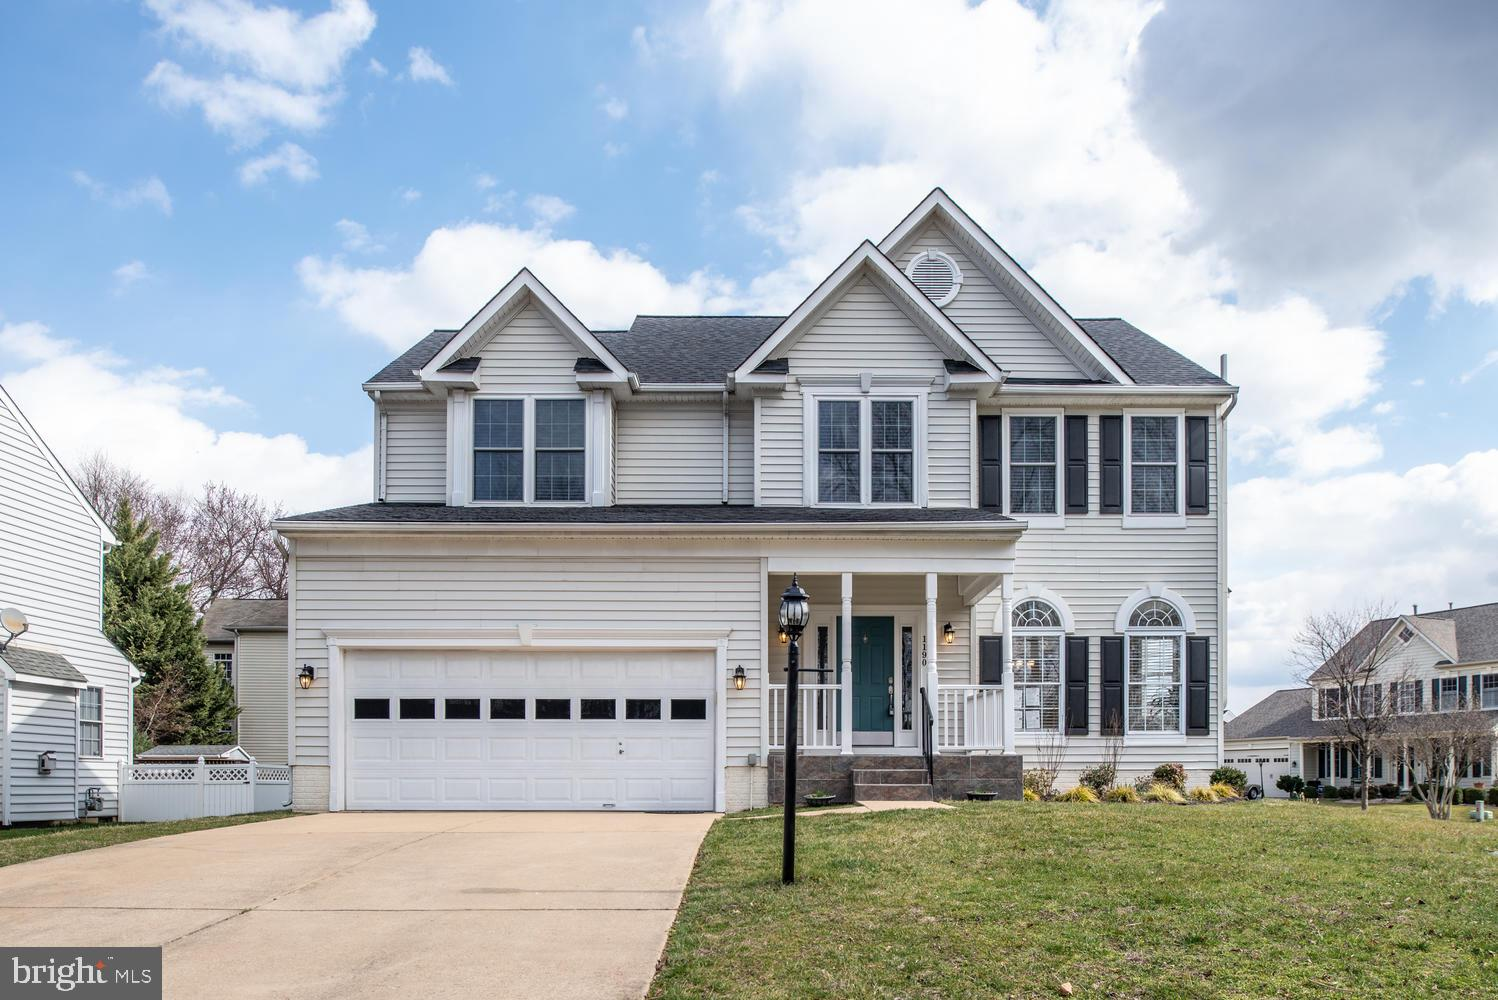 1190 MARSEILLE LANE, WOODBRIDGE, VA 22191